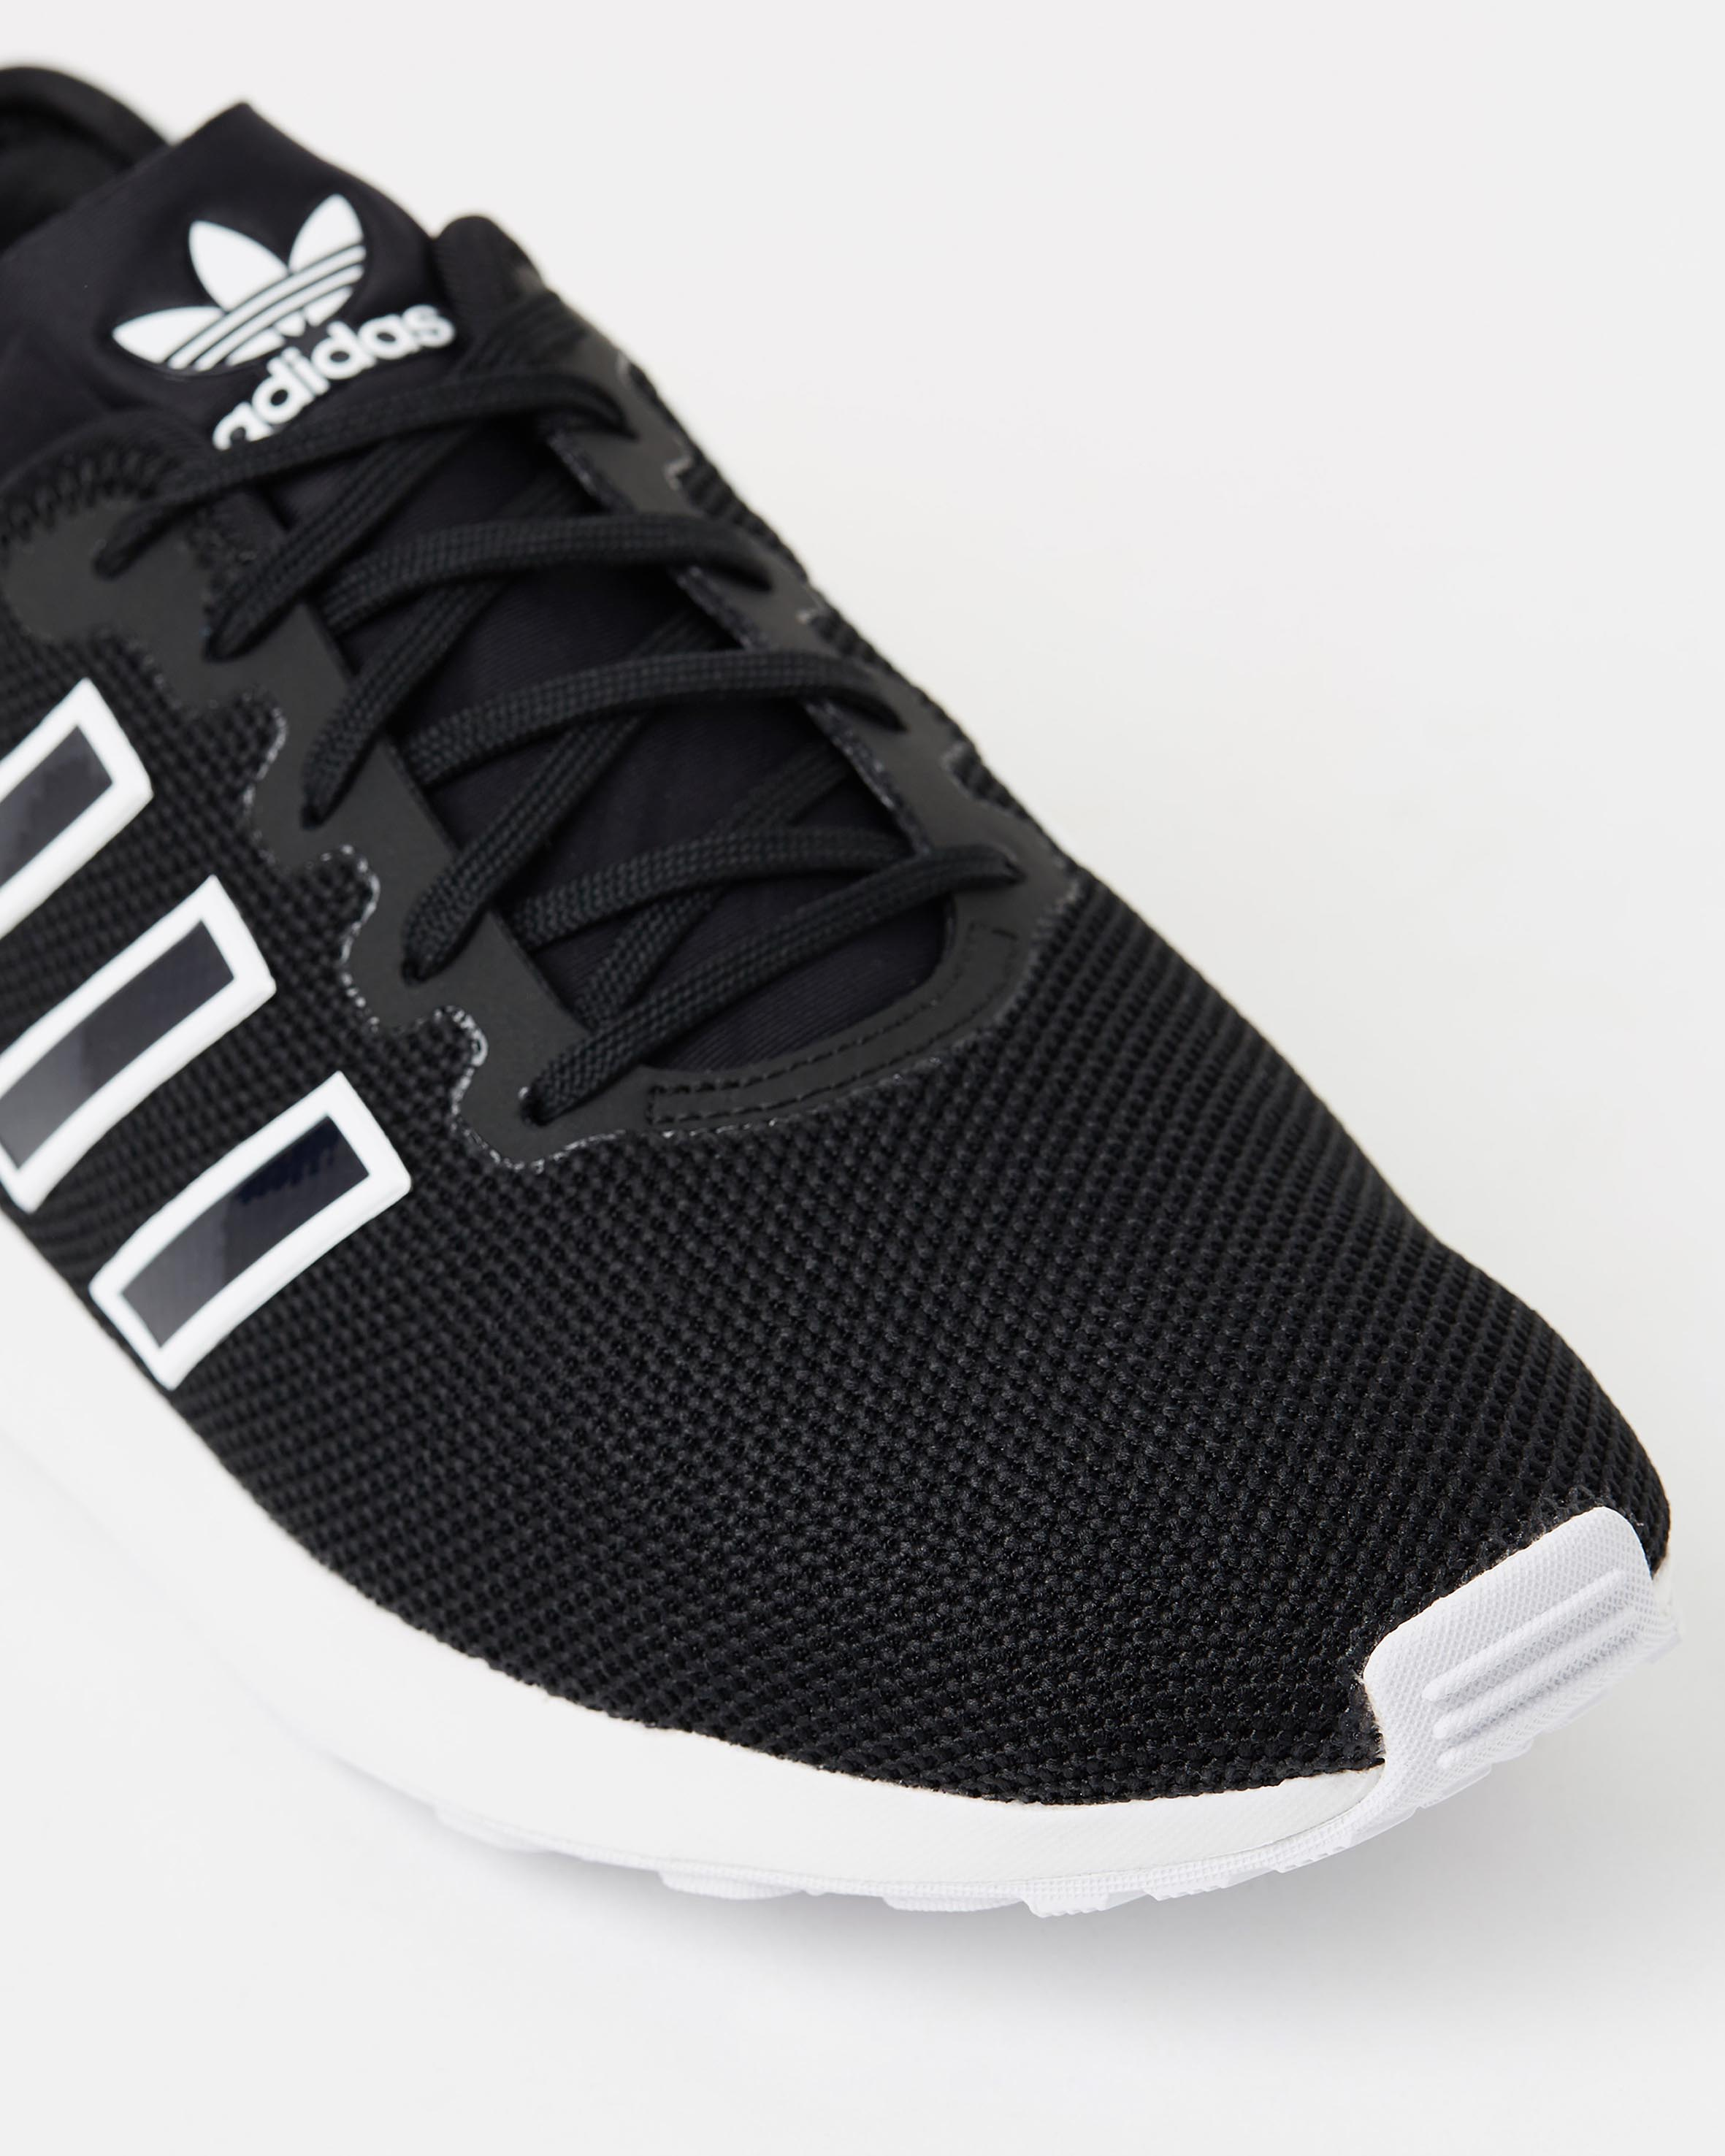 super popular 46451 ccb0c mens black and white zx flux